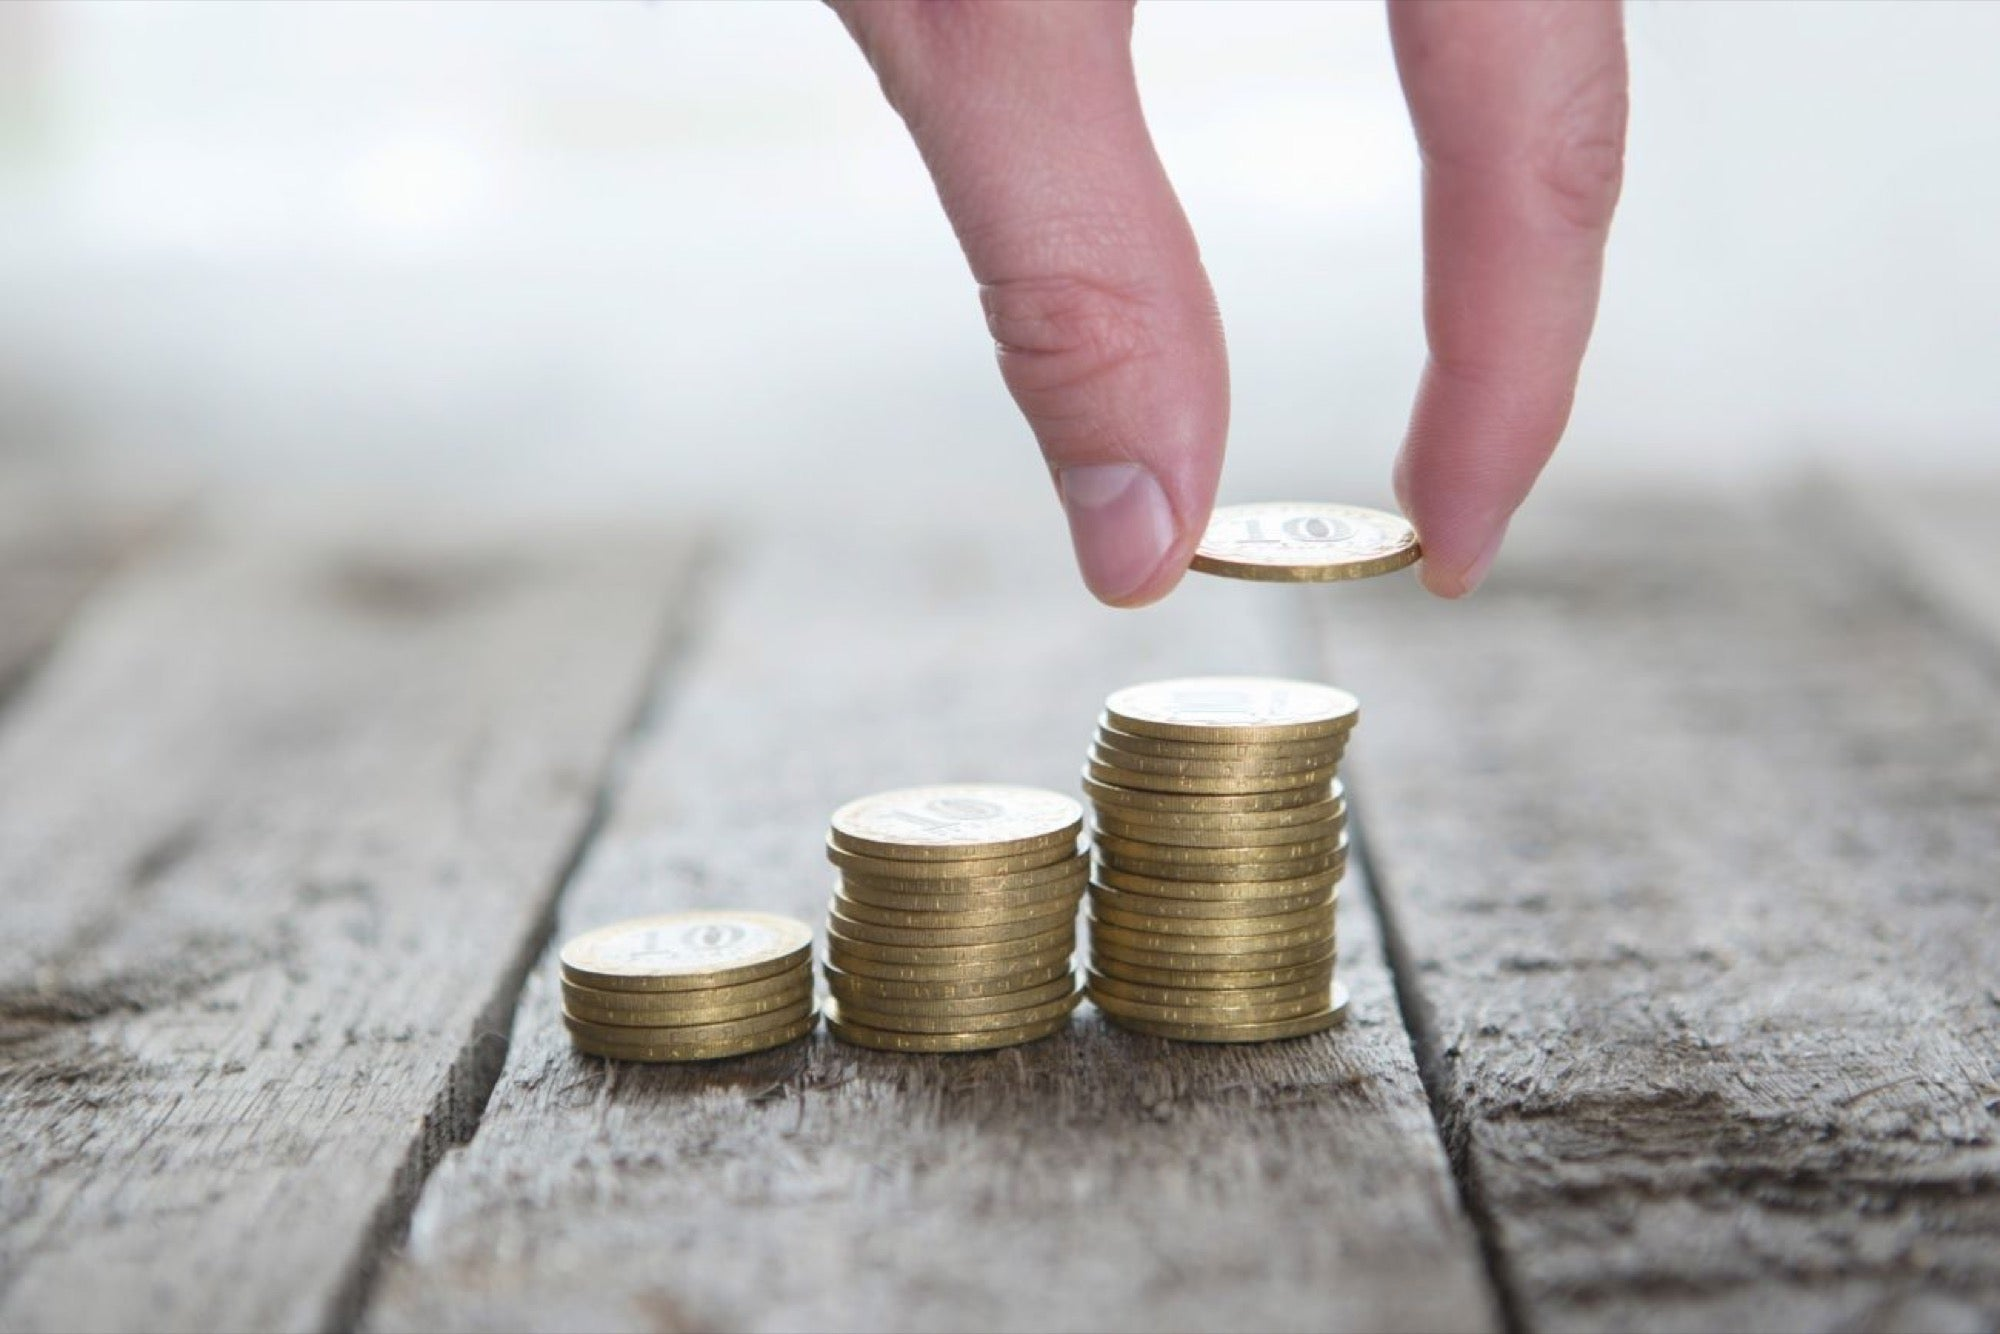 If you have more time than money nowadays, you can optimize that free time by saving more.